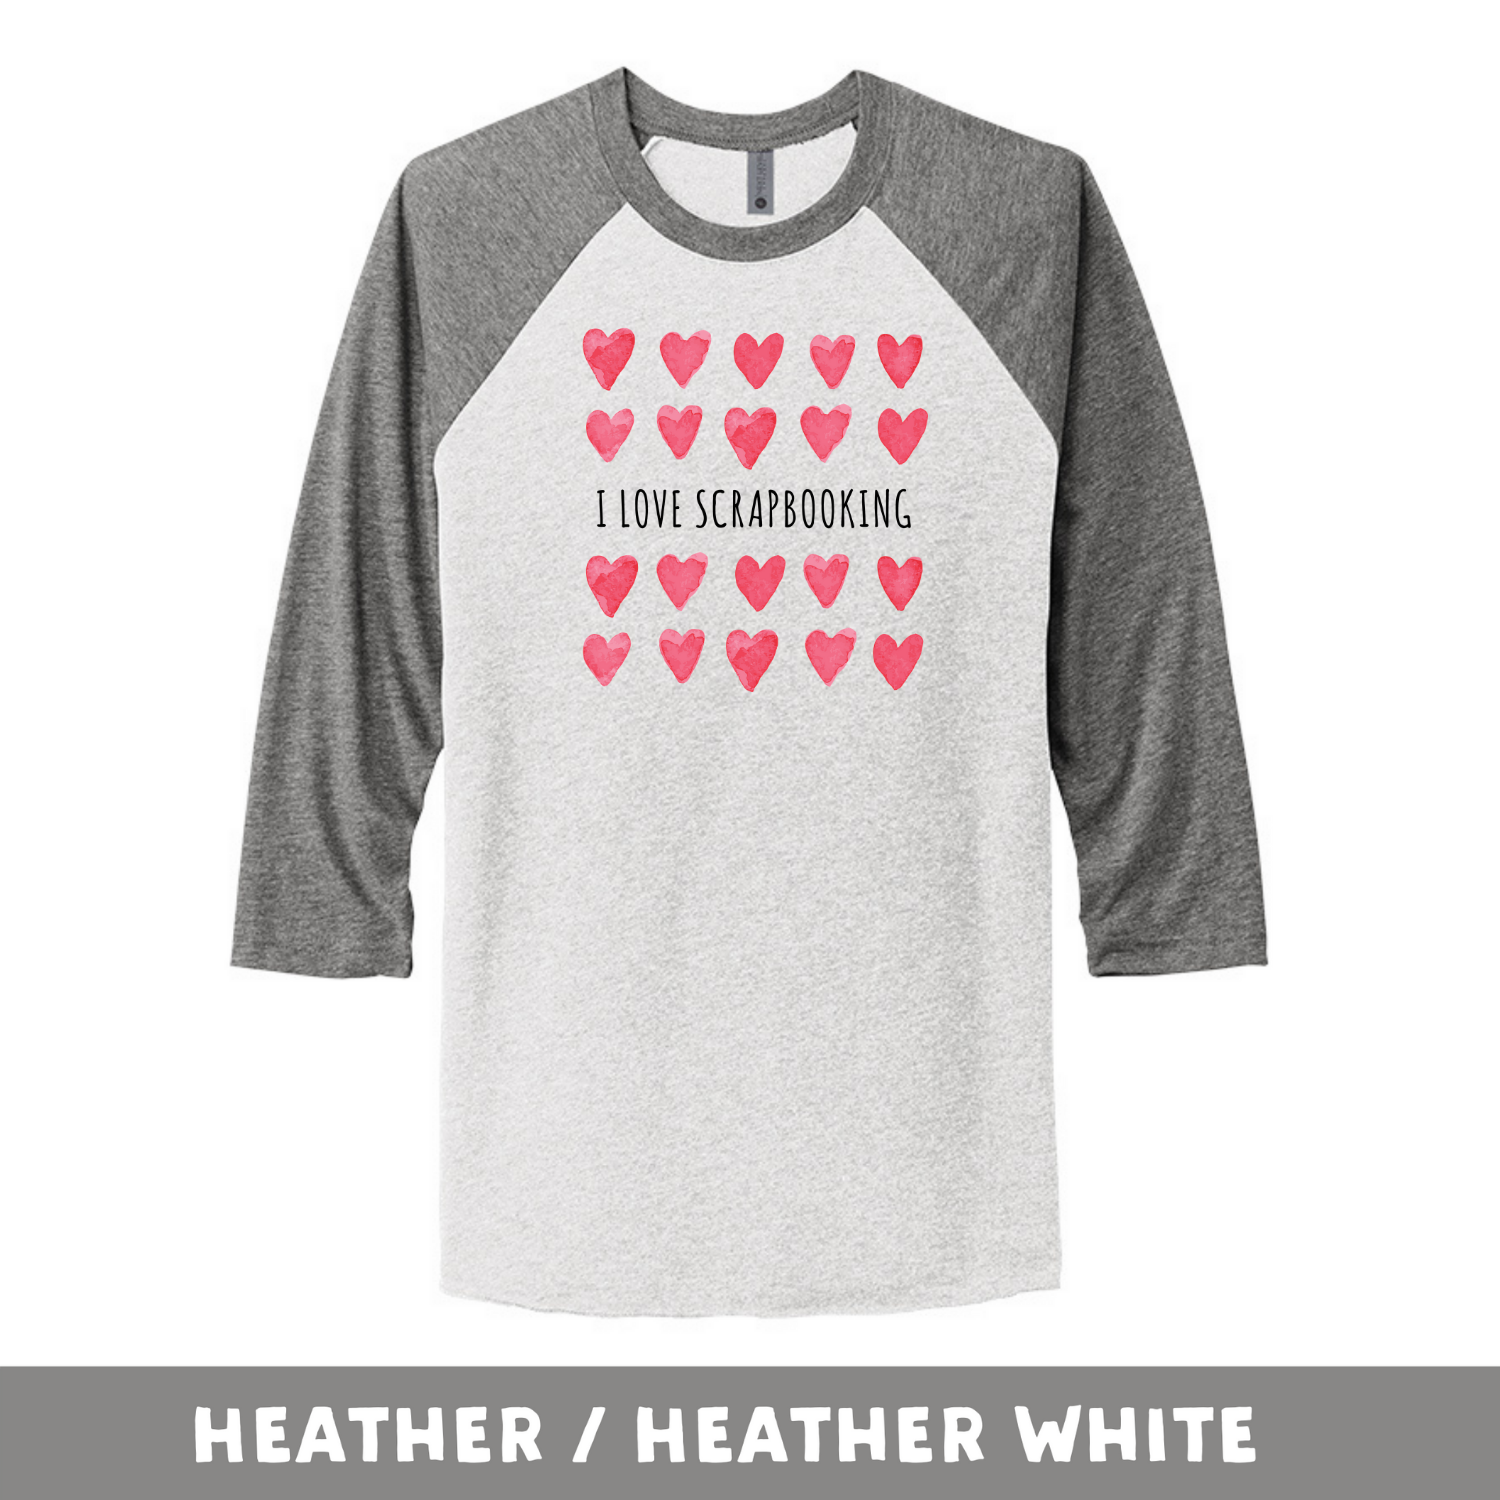 Heather Heather White - Unisex Tri-Blend 3/4 Sleeve Raglan Tee - I Love Scrapbooking